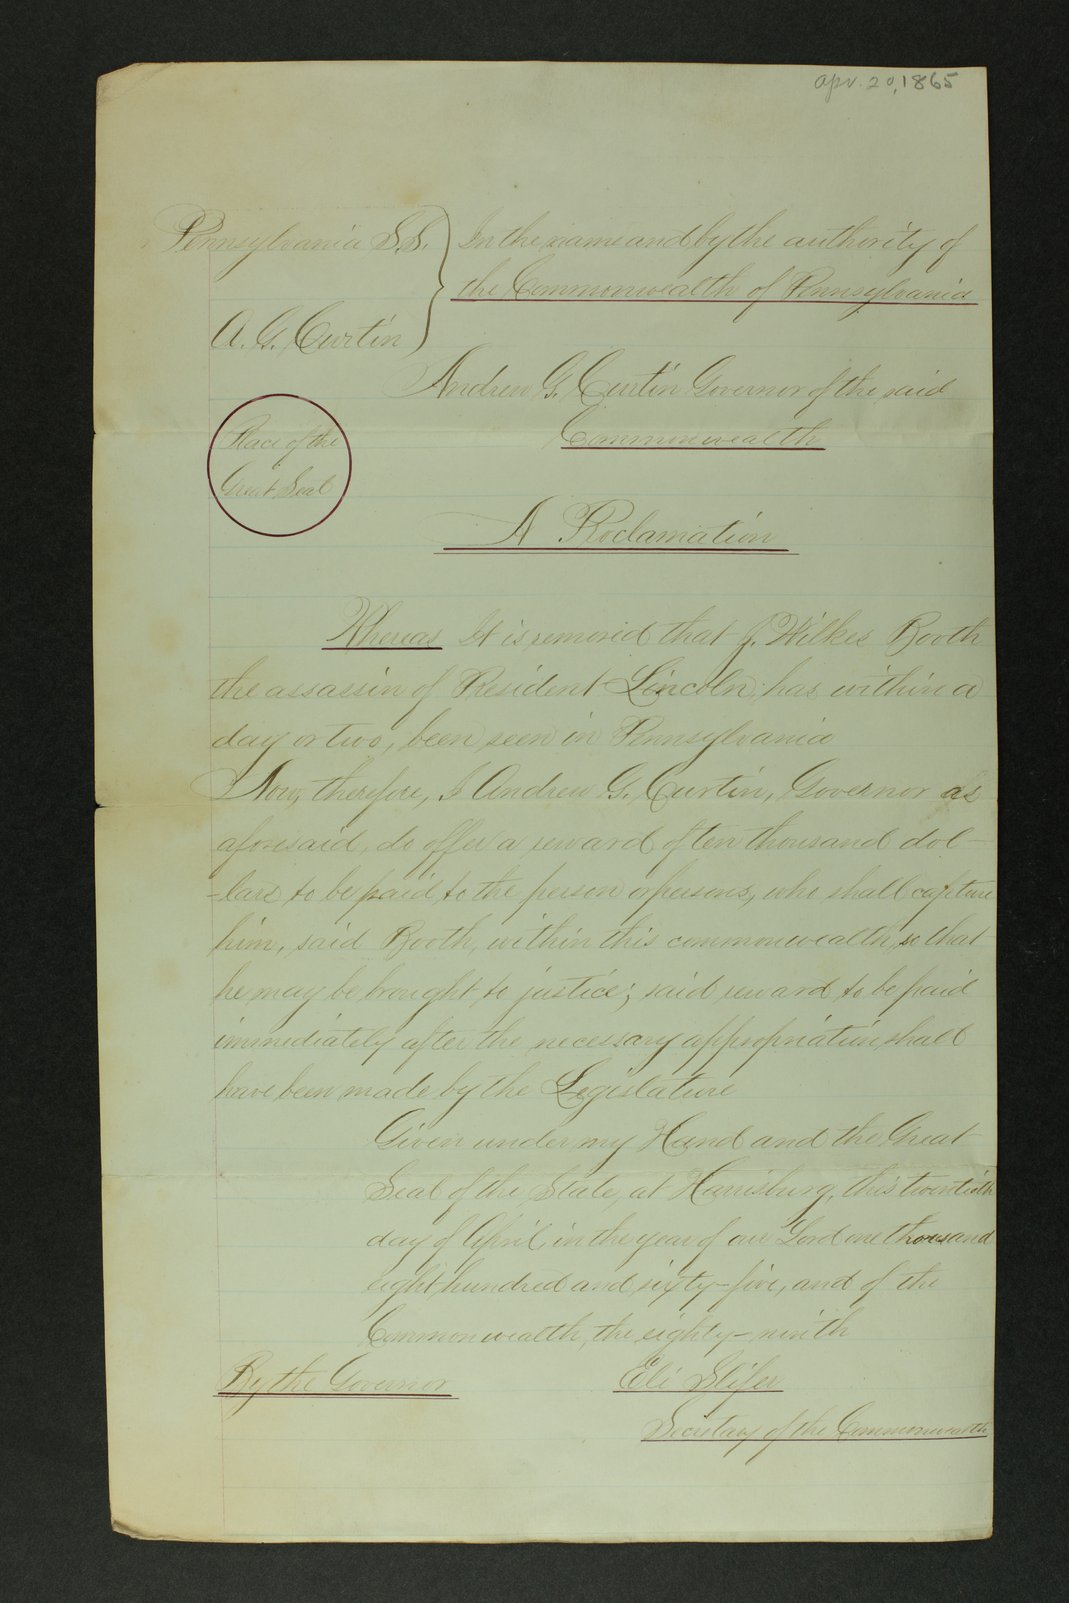 Proclamation by Pennsylvania Governor Andrew G. Curtin after President Lincoln's assassination - 1